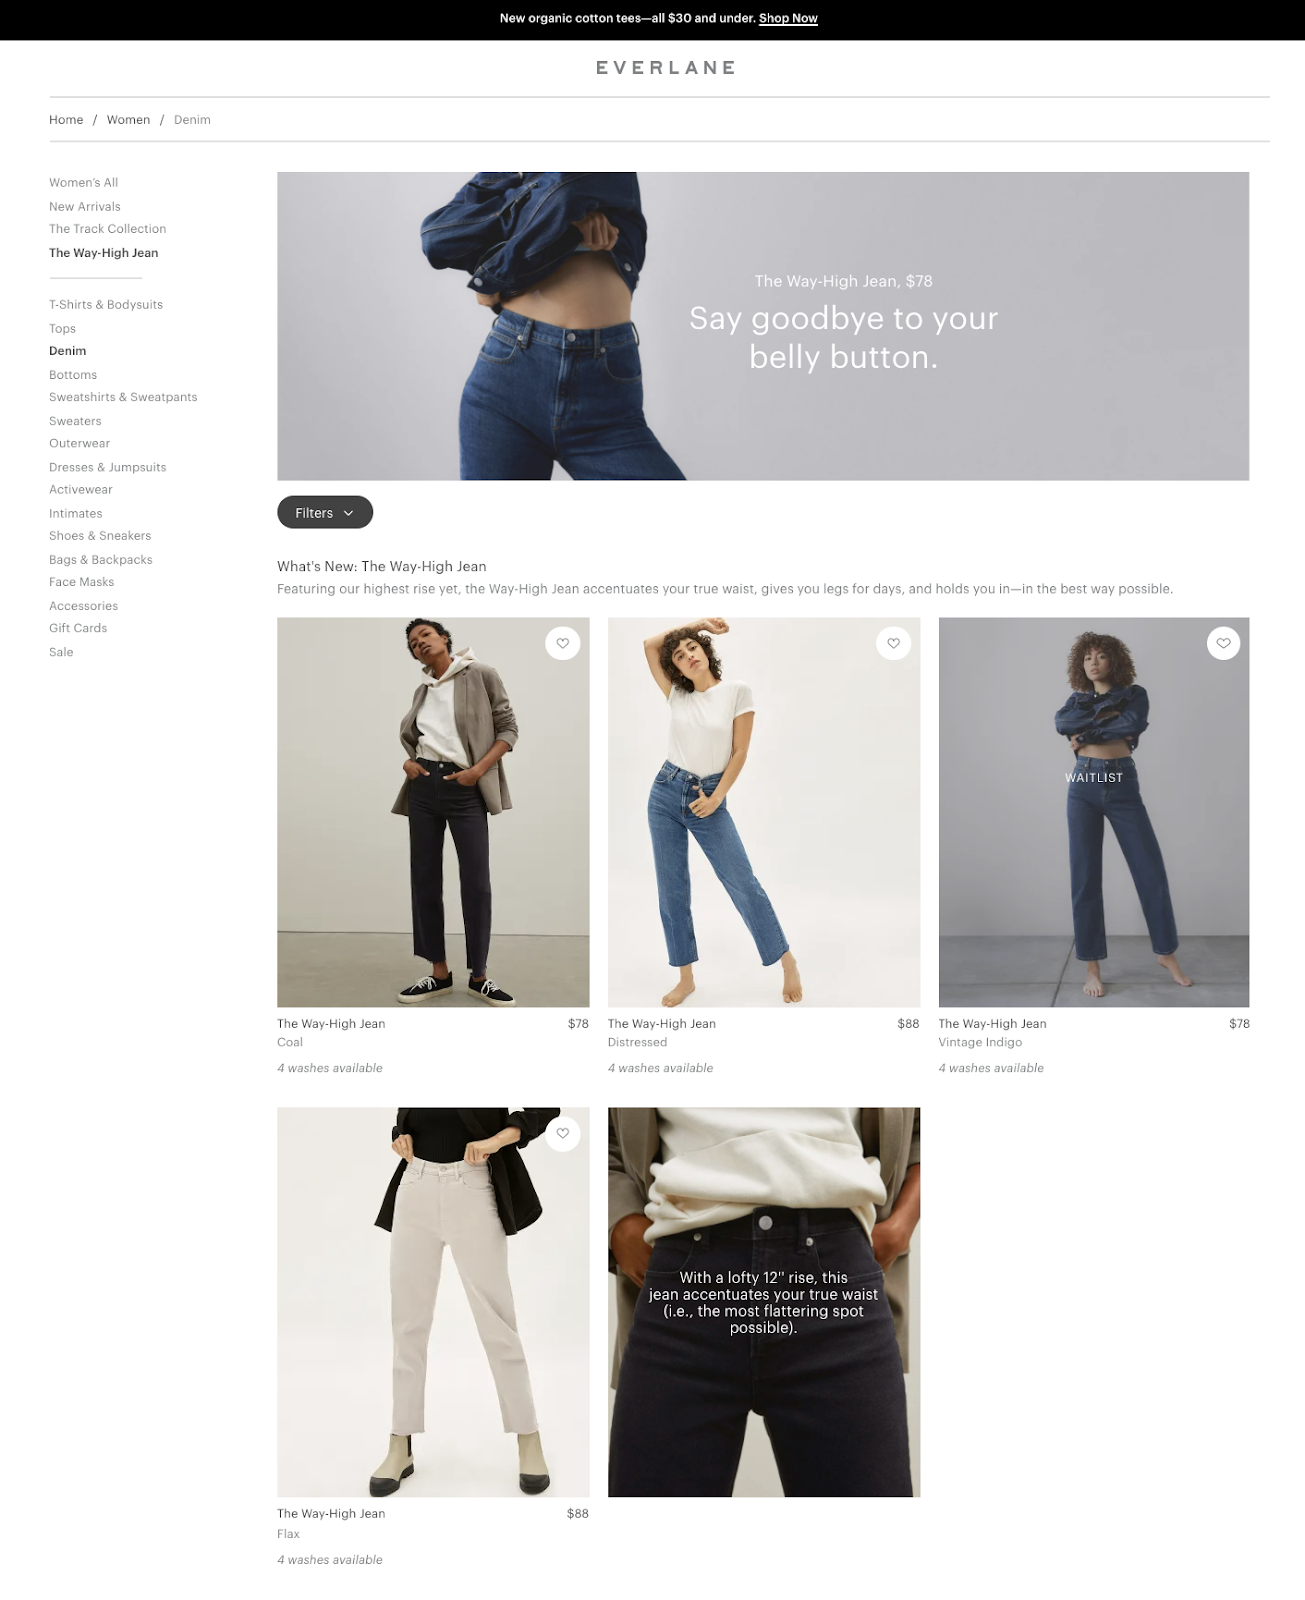 Example of a modular grid in web design (source: Everlane)